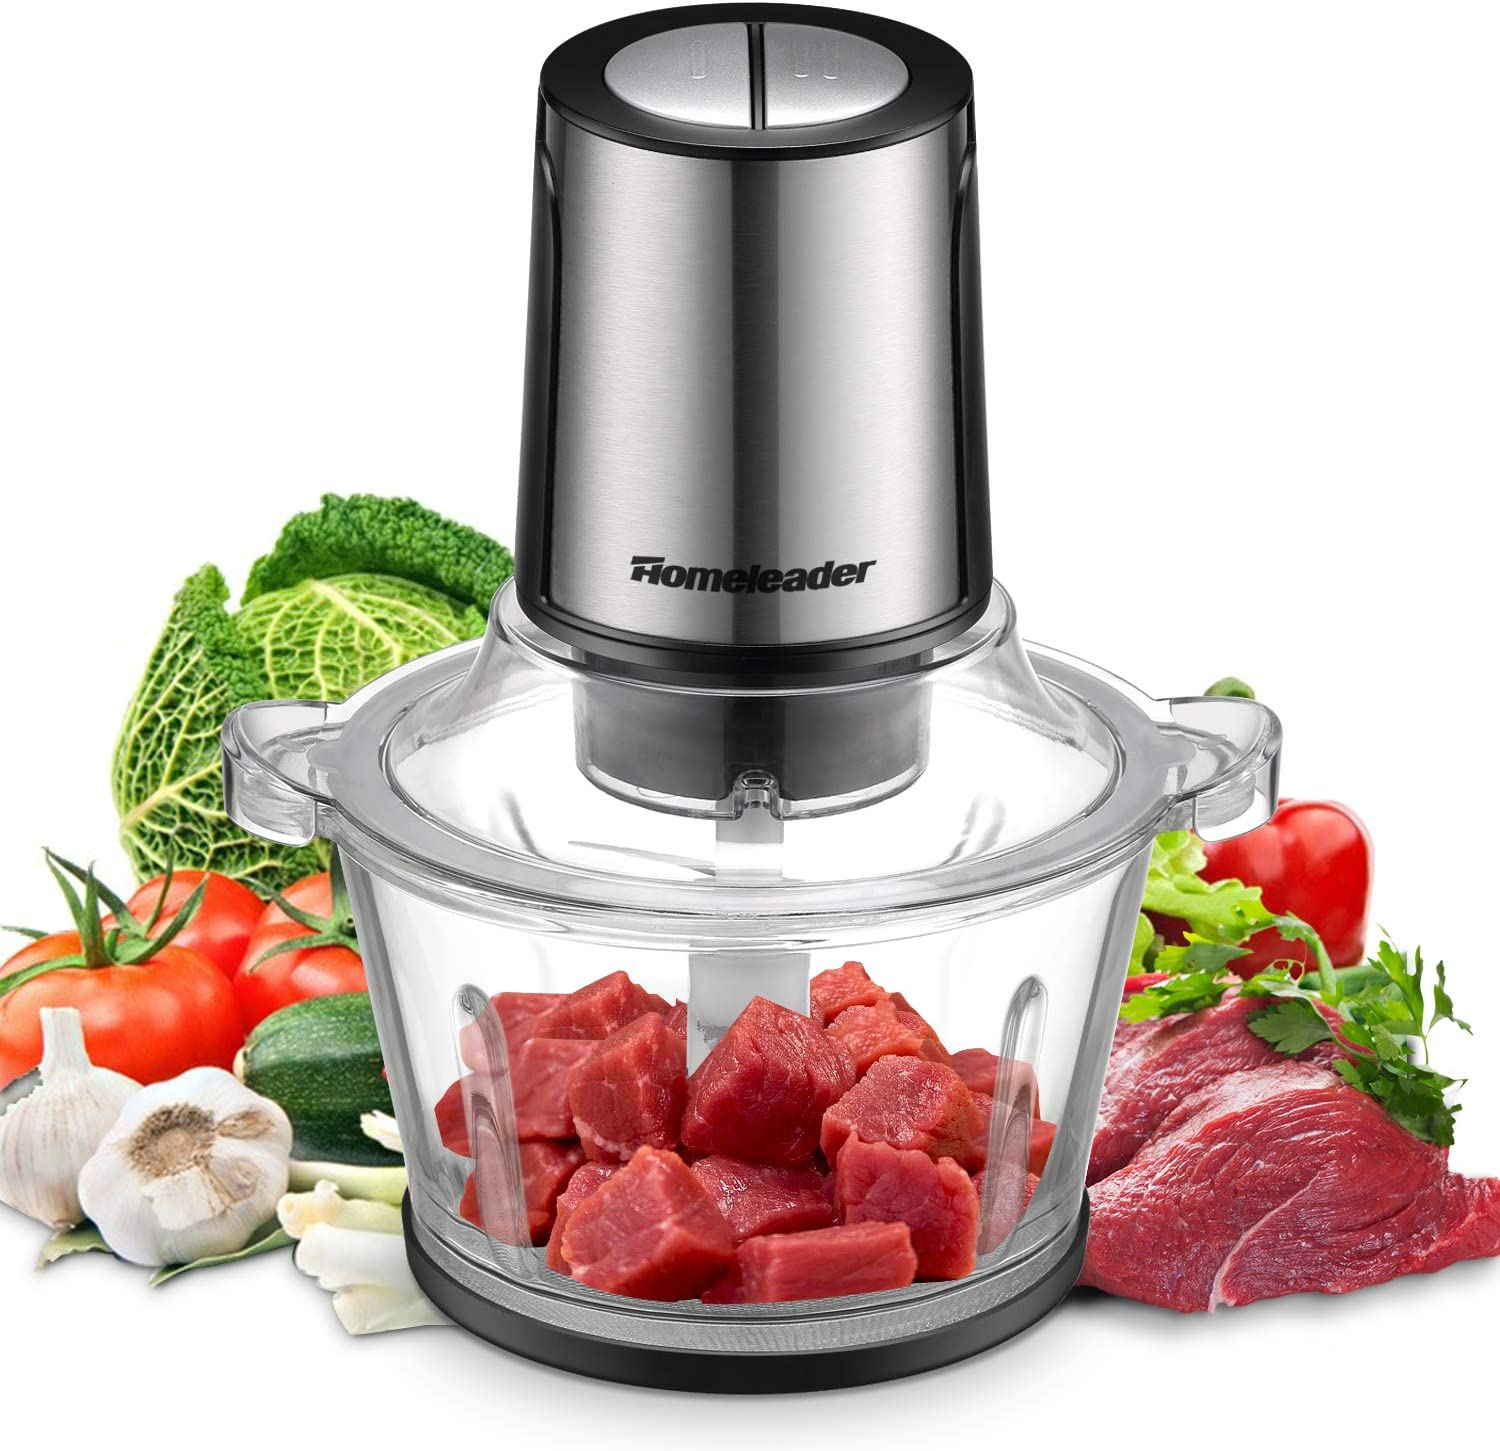 Electric Food Chopper, 8-Cup Food Processor by Homeleader, 2L BPA-Free Glass Bowl Blender Grinder for Meat, Vegetables, Fruits and Nuts, Fast & Slow 2 Speeds, 400W